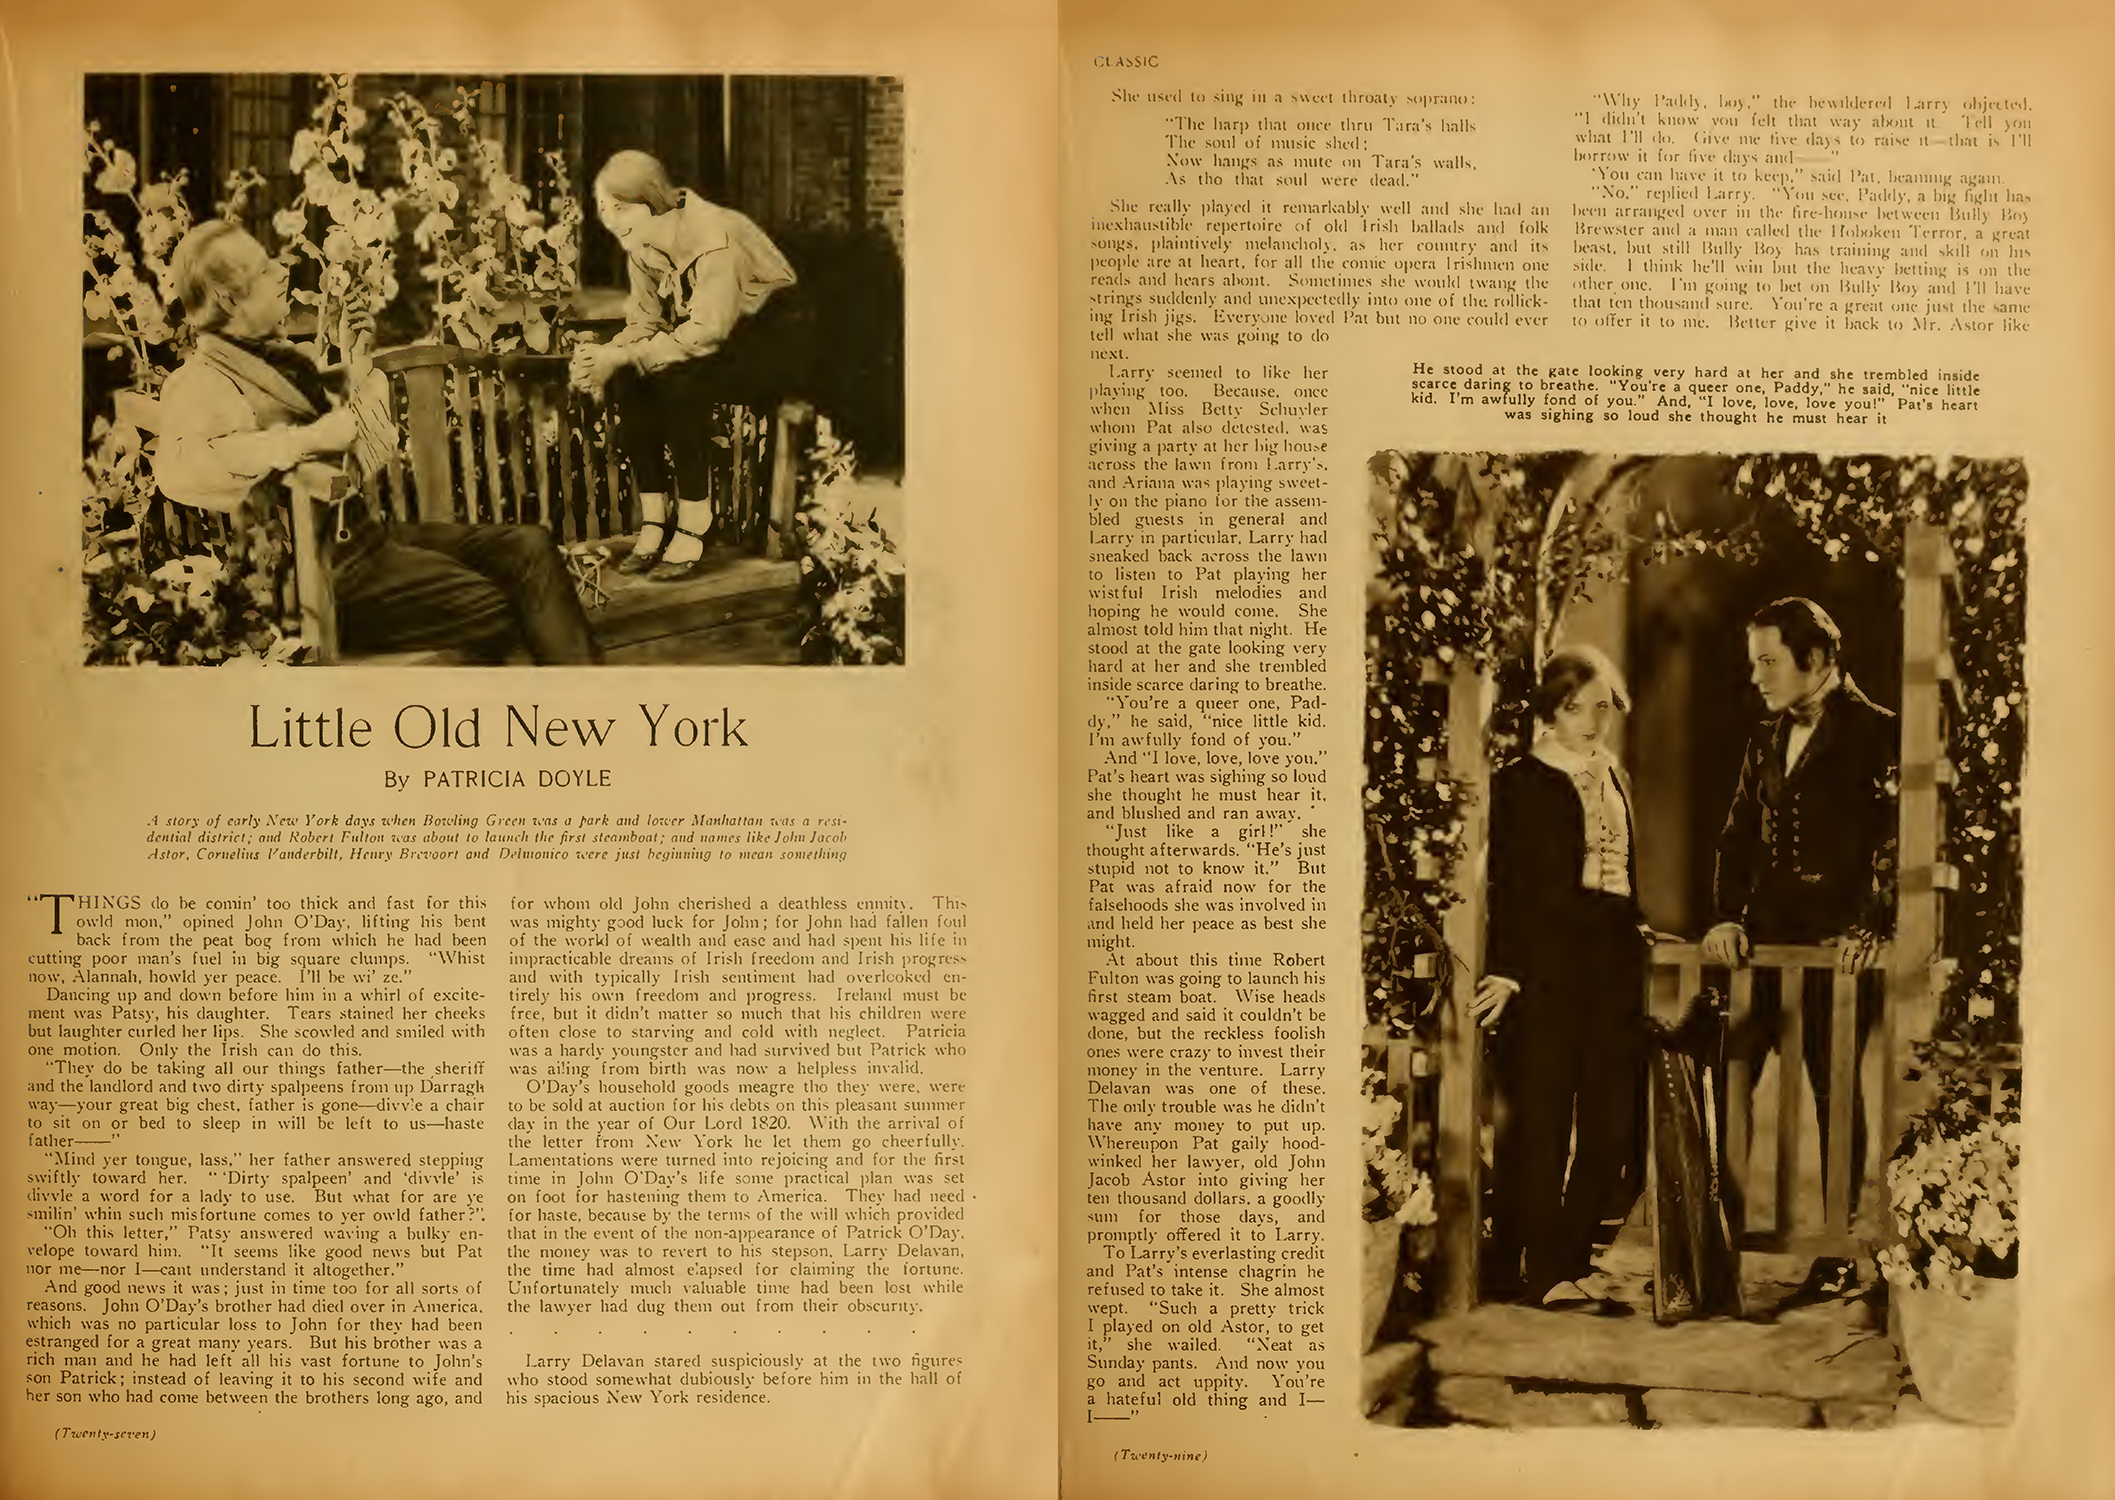 Novelization of the 1923 Marion Davies film LITTLE OLD NEW YORK, published in Motion Picture Classic Magazine, June 1923.